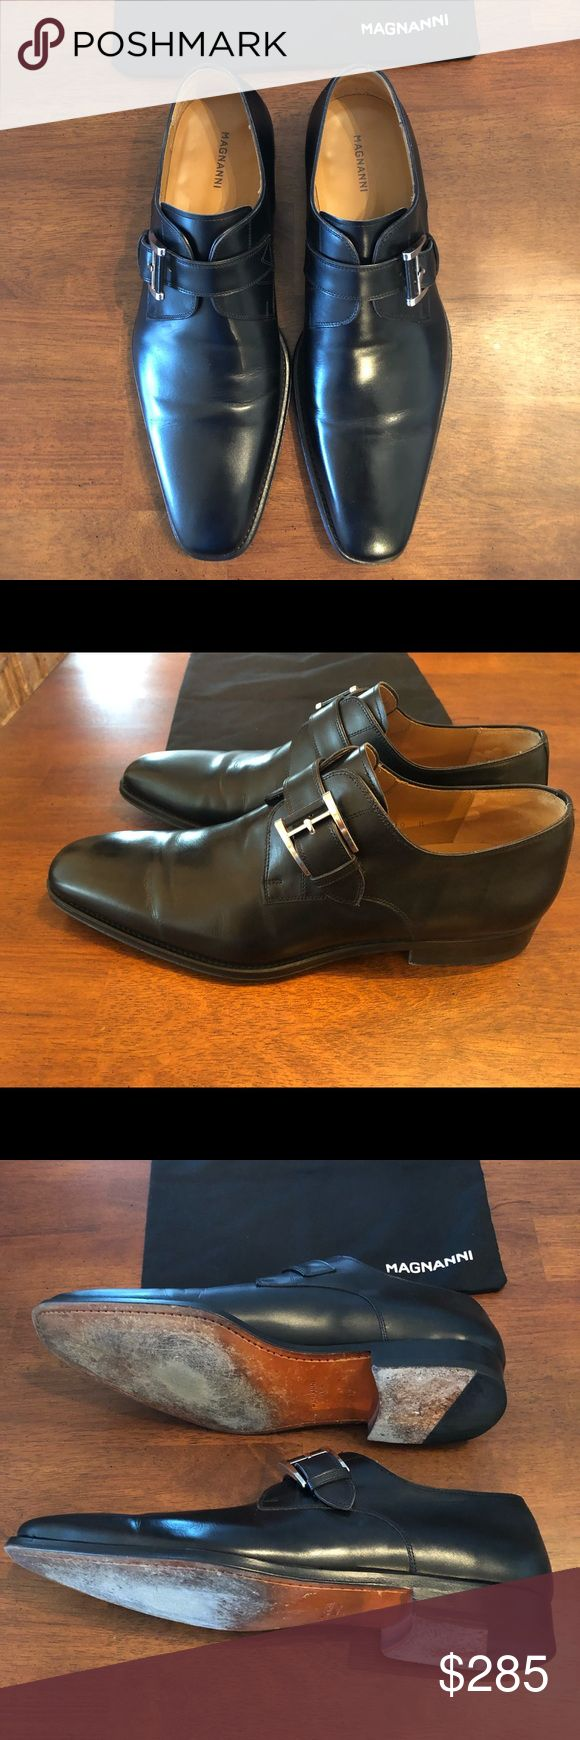 Magnanni -Marco Monk Strap Loafer Black Size 10M Box-Dust Bag included- Barely w...